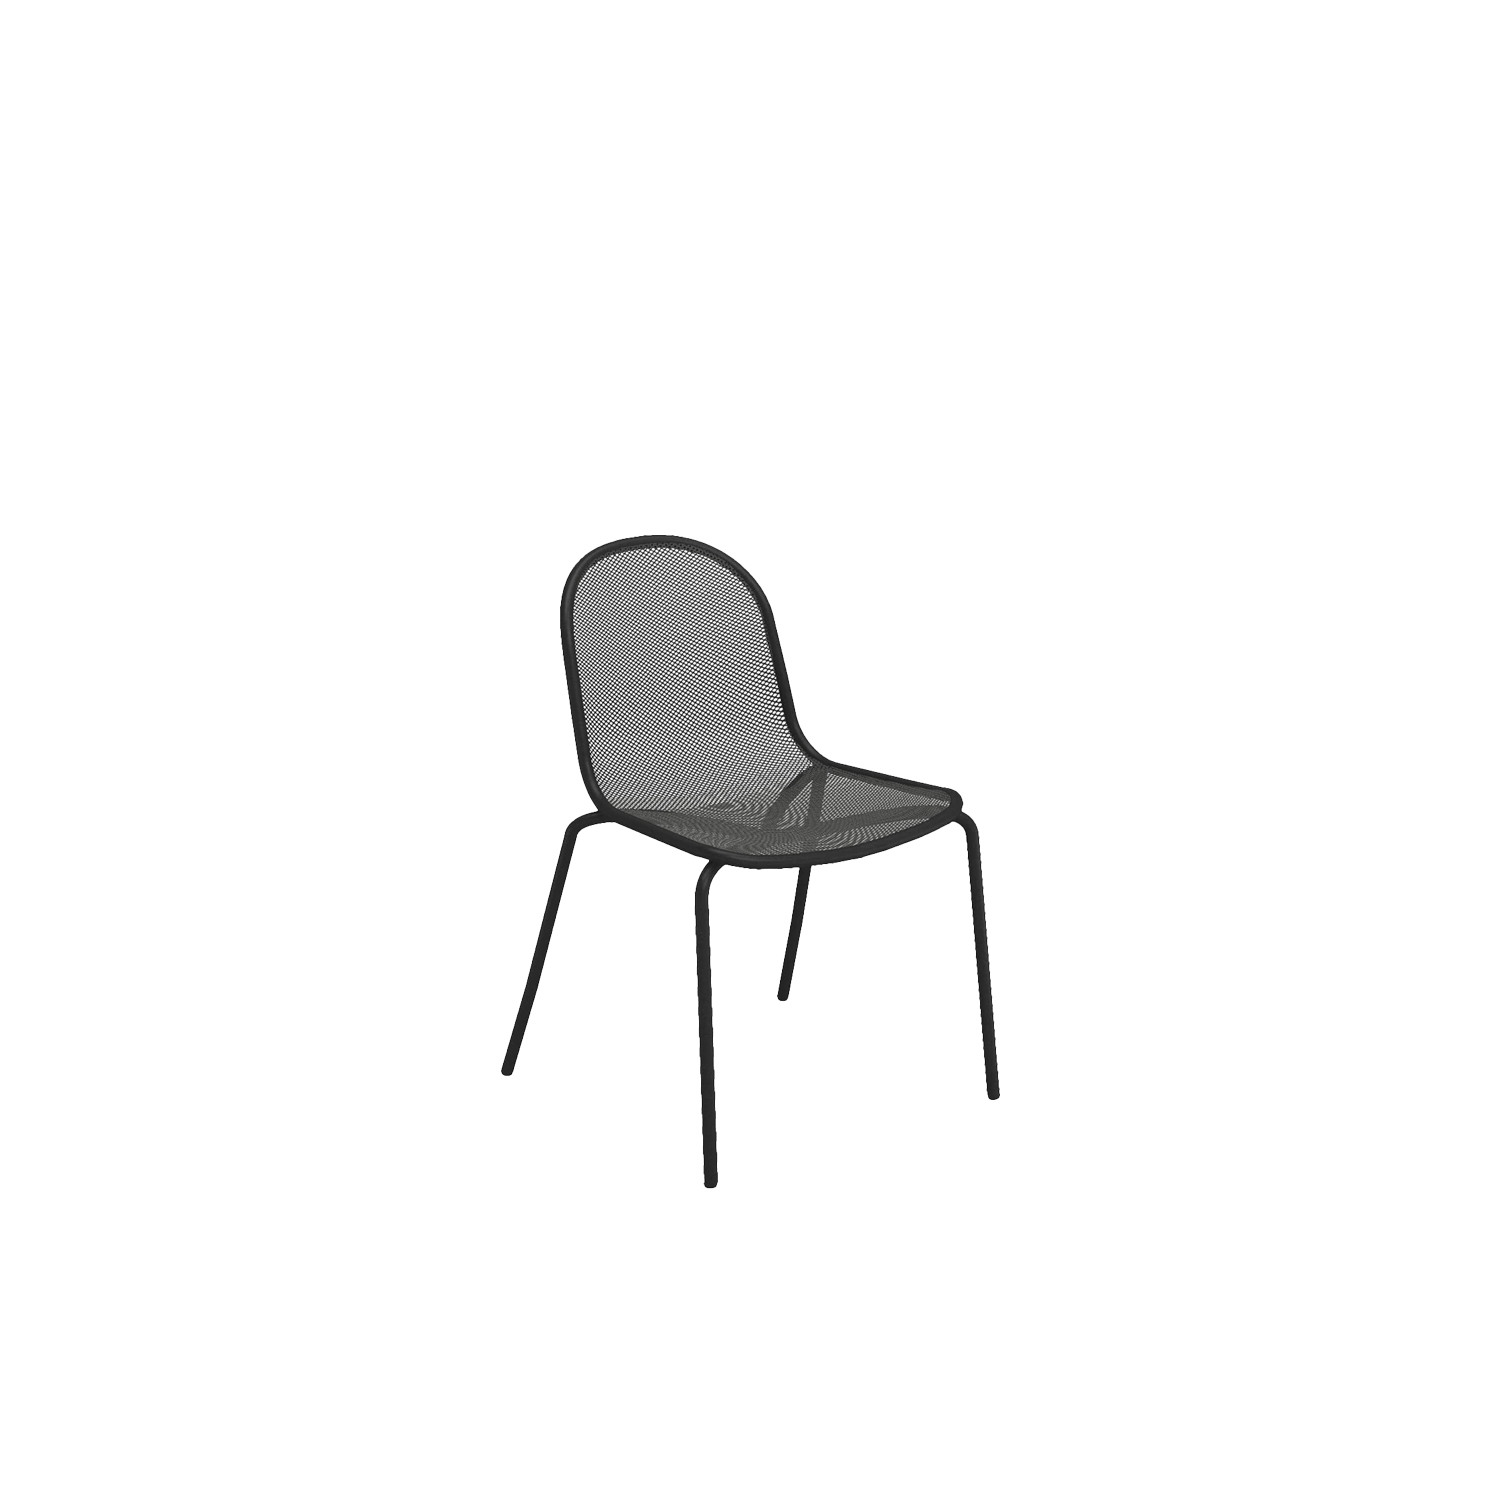 Nova Dining Chair - Set of 4 - The Nova collection is characterised by small dimensions for maximum comfort, with unmistakable and original lines. The unusual armrest gives style and character to the armchair, bringing a bright note to a wide range of settings. The collection is completed with two square dining tables, whose clean lines enhance the unique design of the seats.  | Matter of Stuff